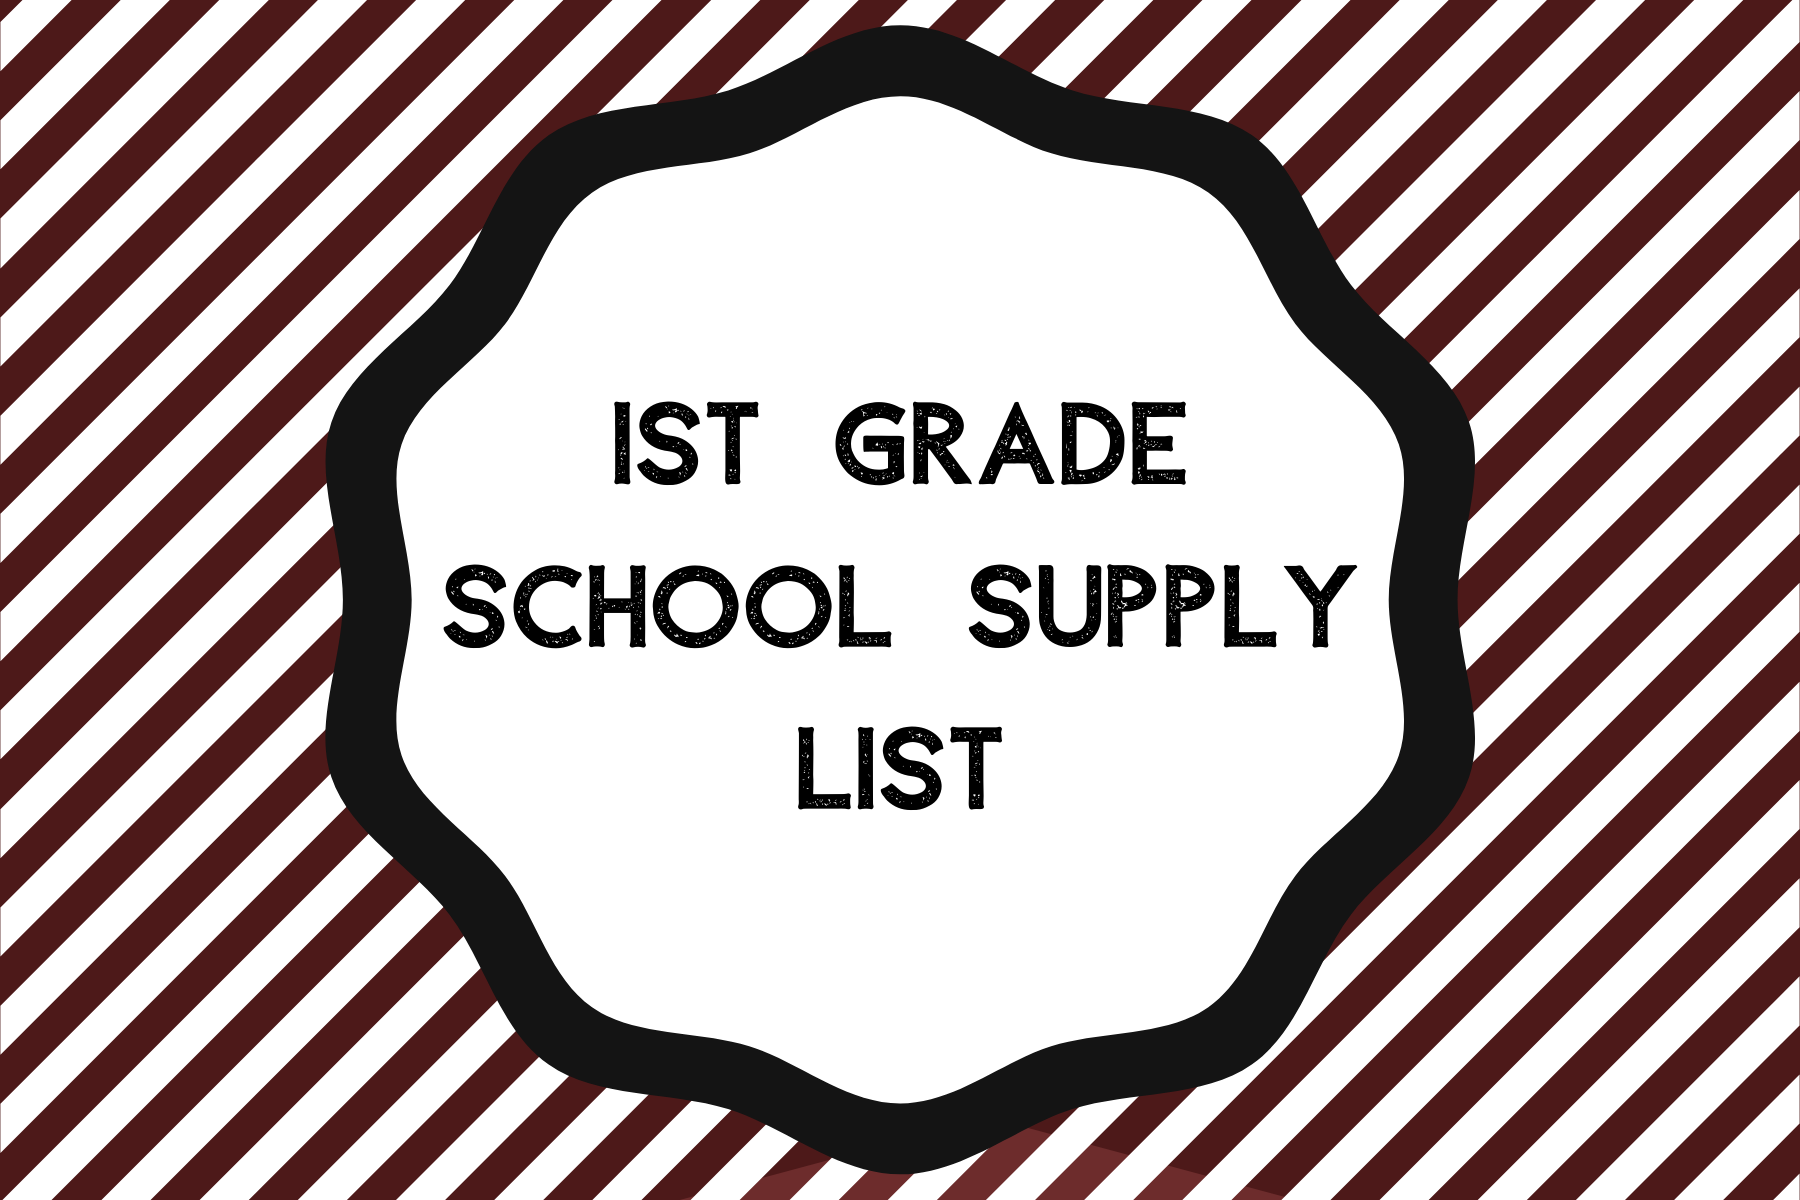 1st grade supply list